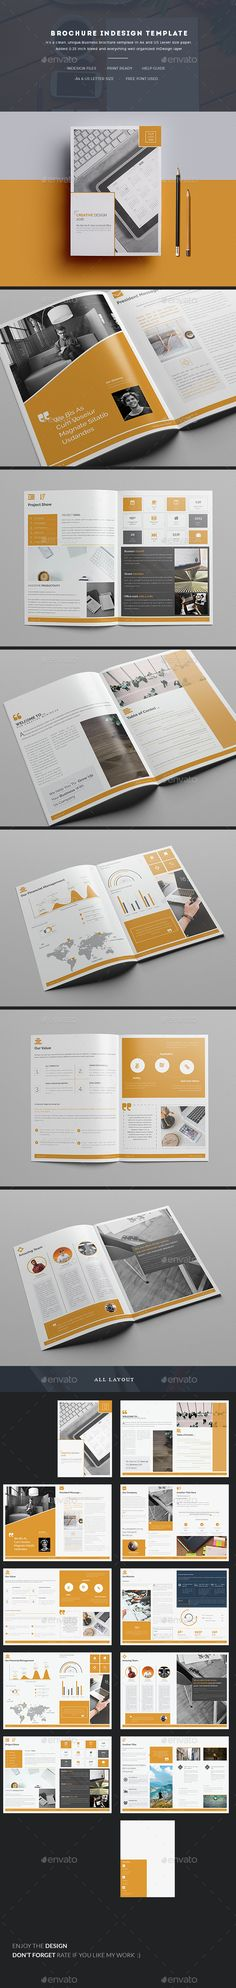 Brochure InDesign Template  — InDesign Template #triangle #modern • Download ➝ https://graphicriver.net/item/brochure-indesign-template/18521458?ref=pxcr